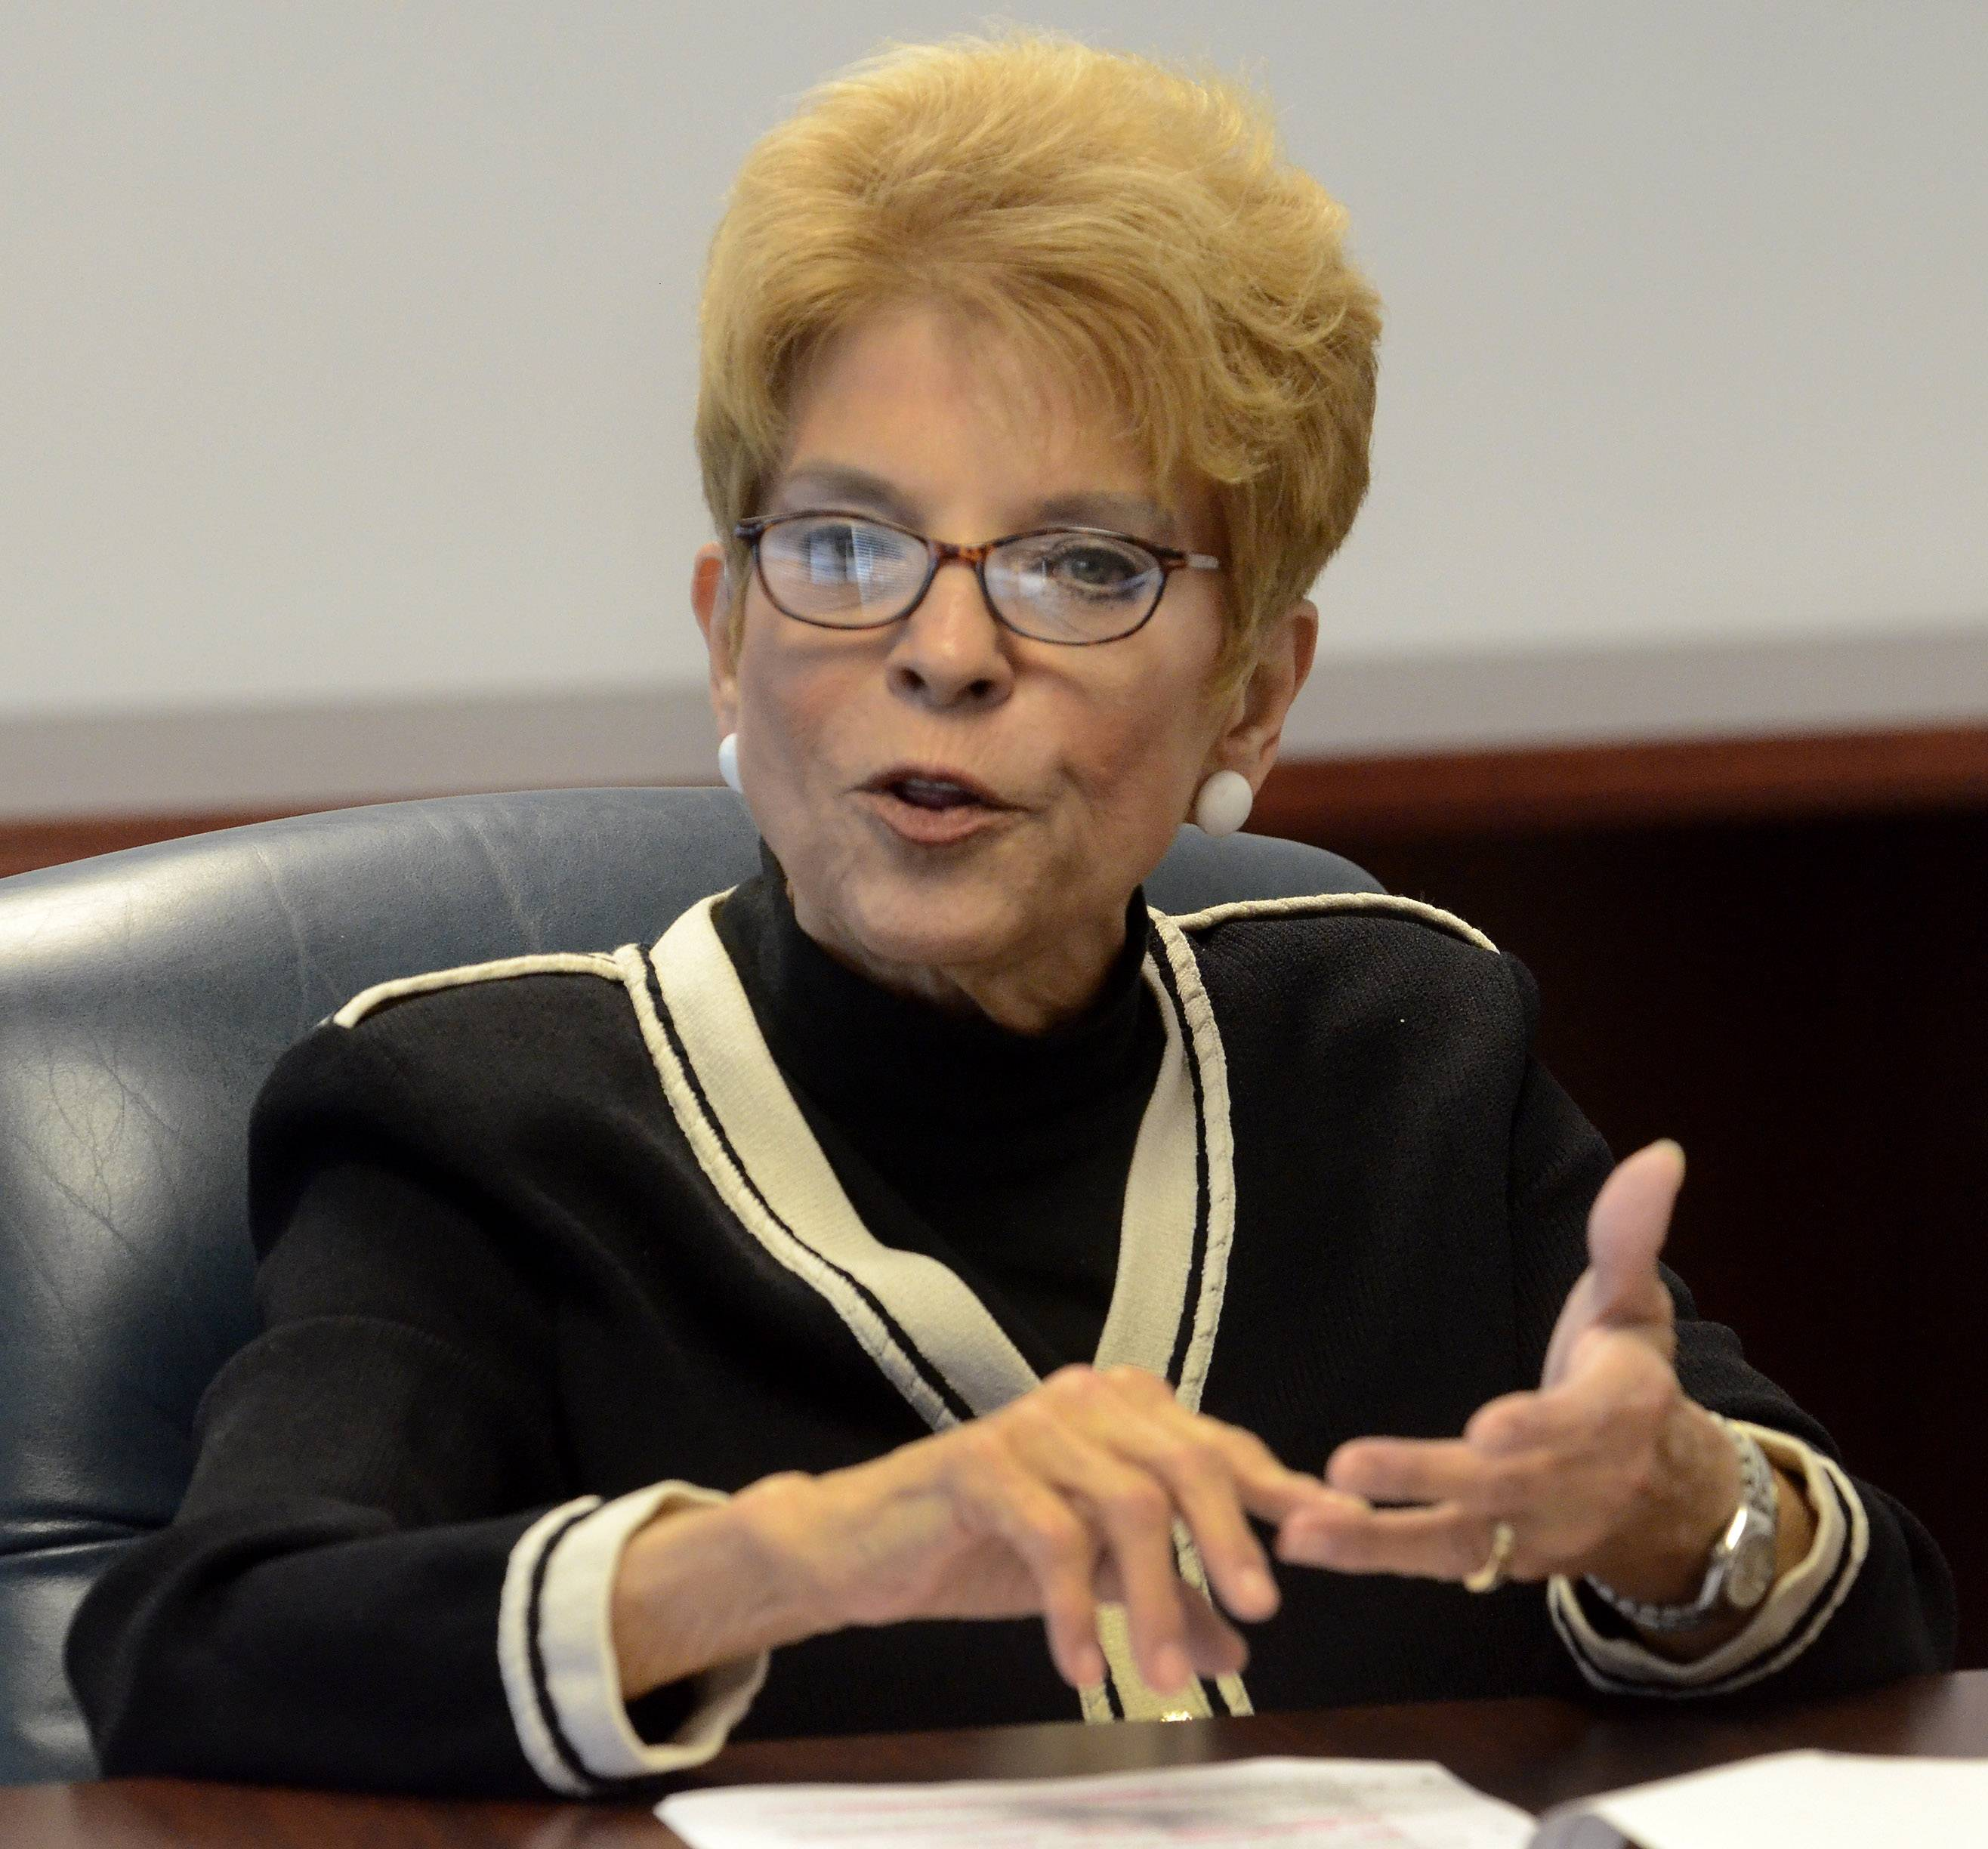 Illinois Comptroller Judy Baar Topinka met with the Daily Herald Editorial Board earlier this year before her re-election to the office in November.